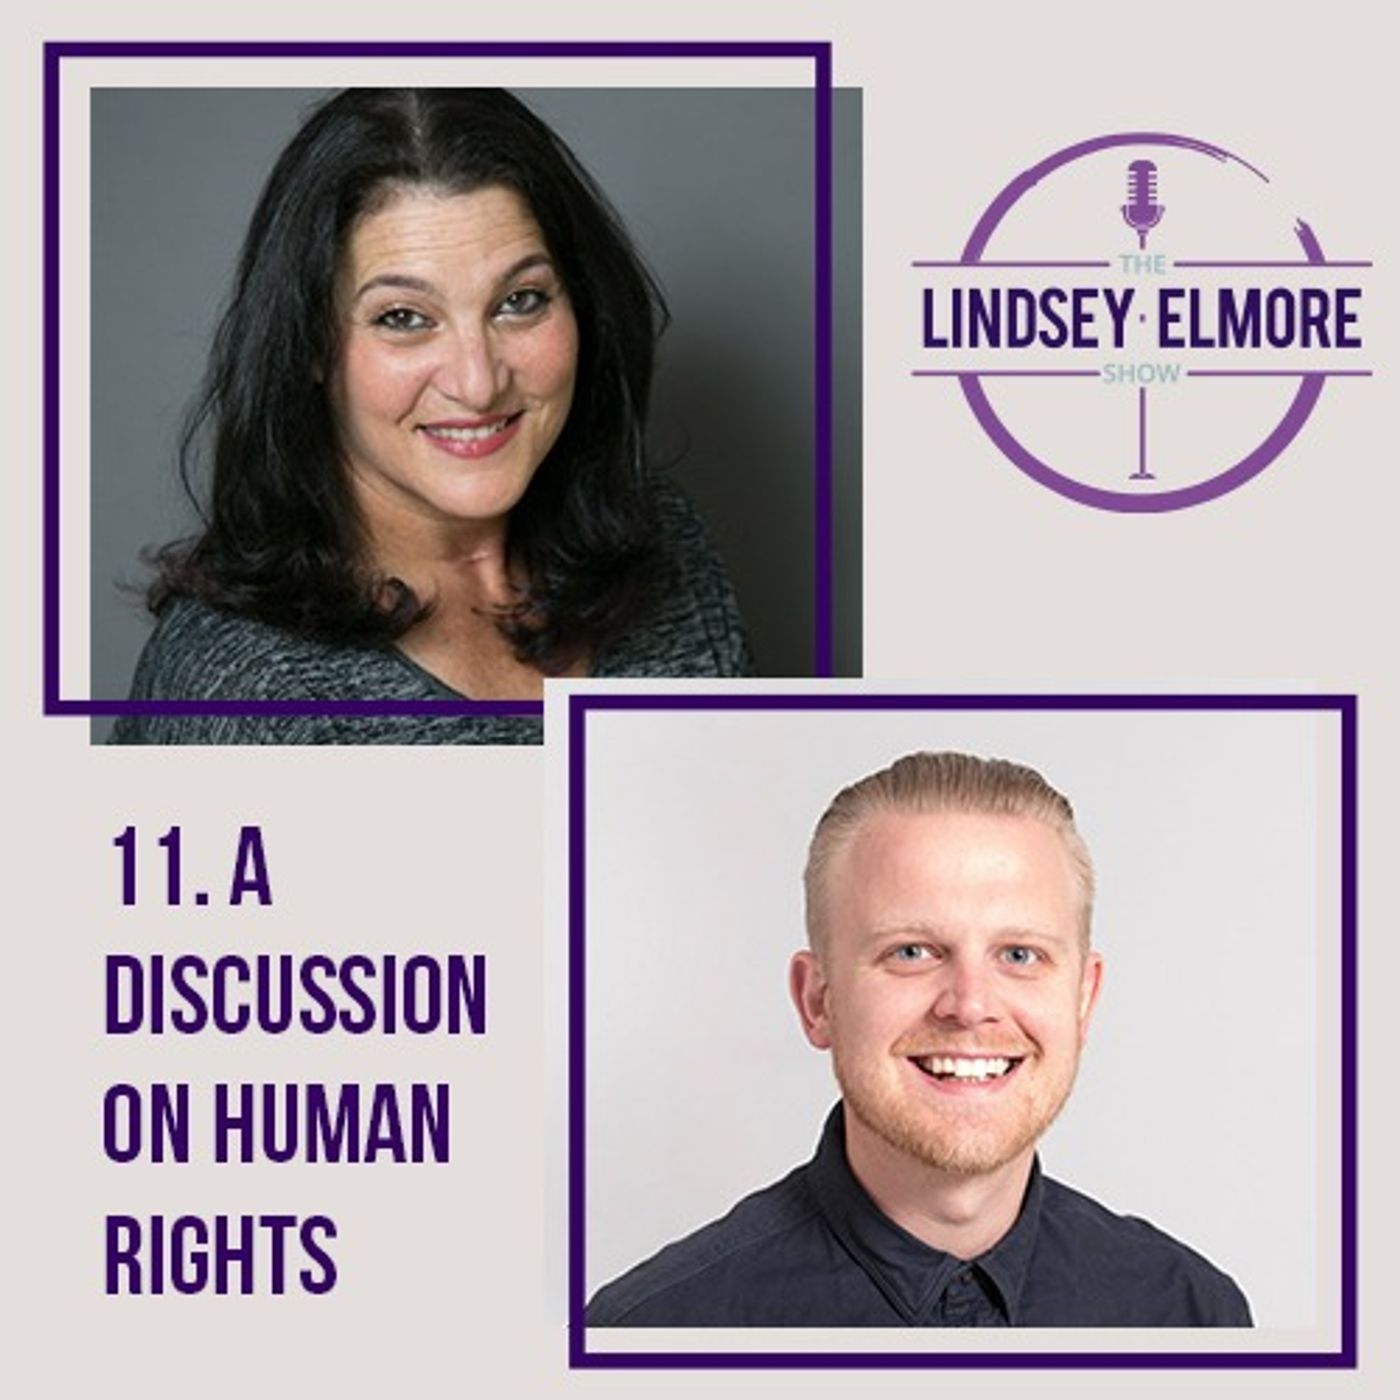 A discussion on human rights. Interviews with Ben Cooley & Naomi Ackerman.